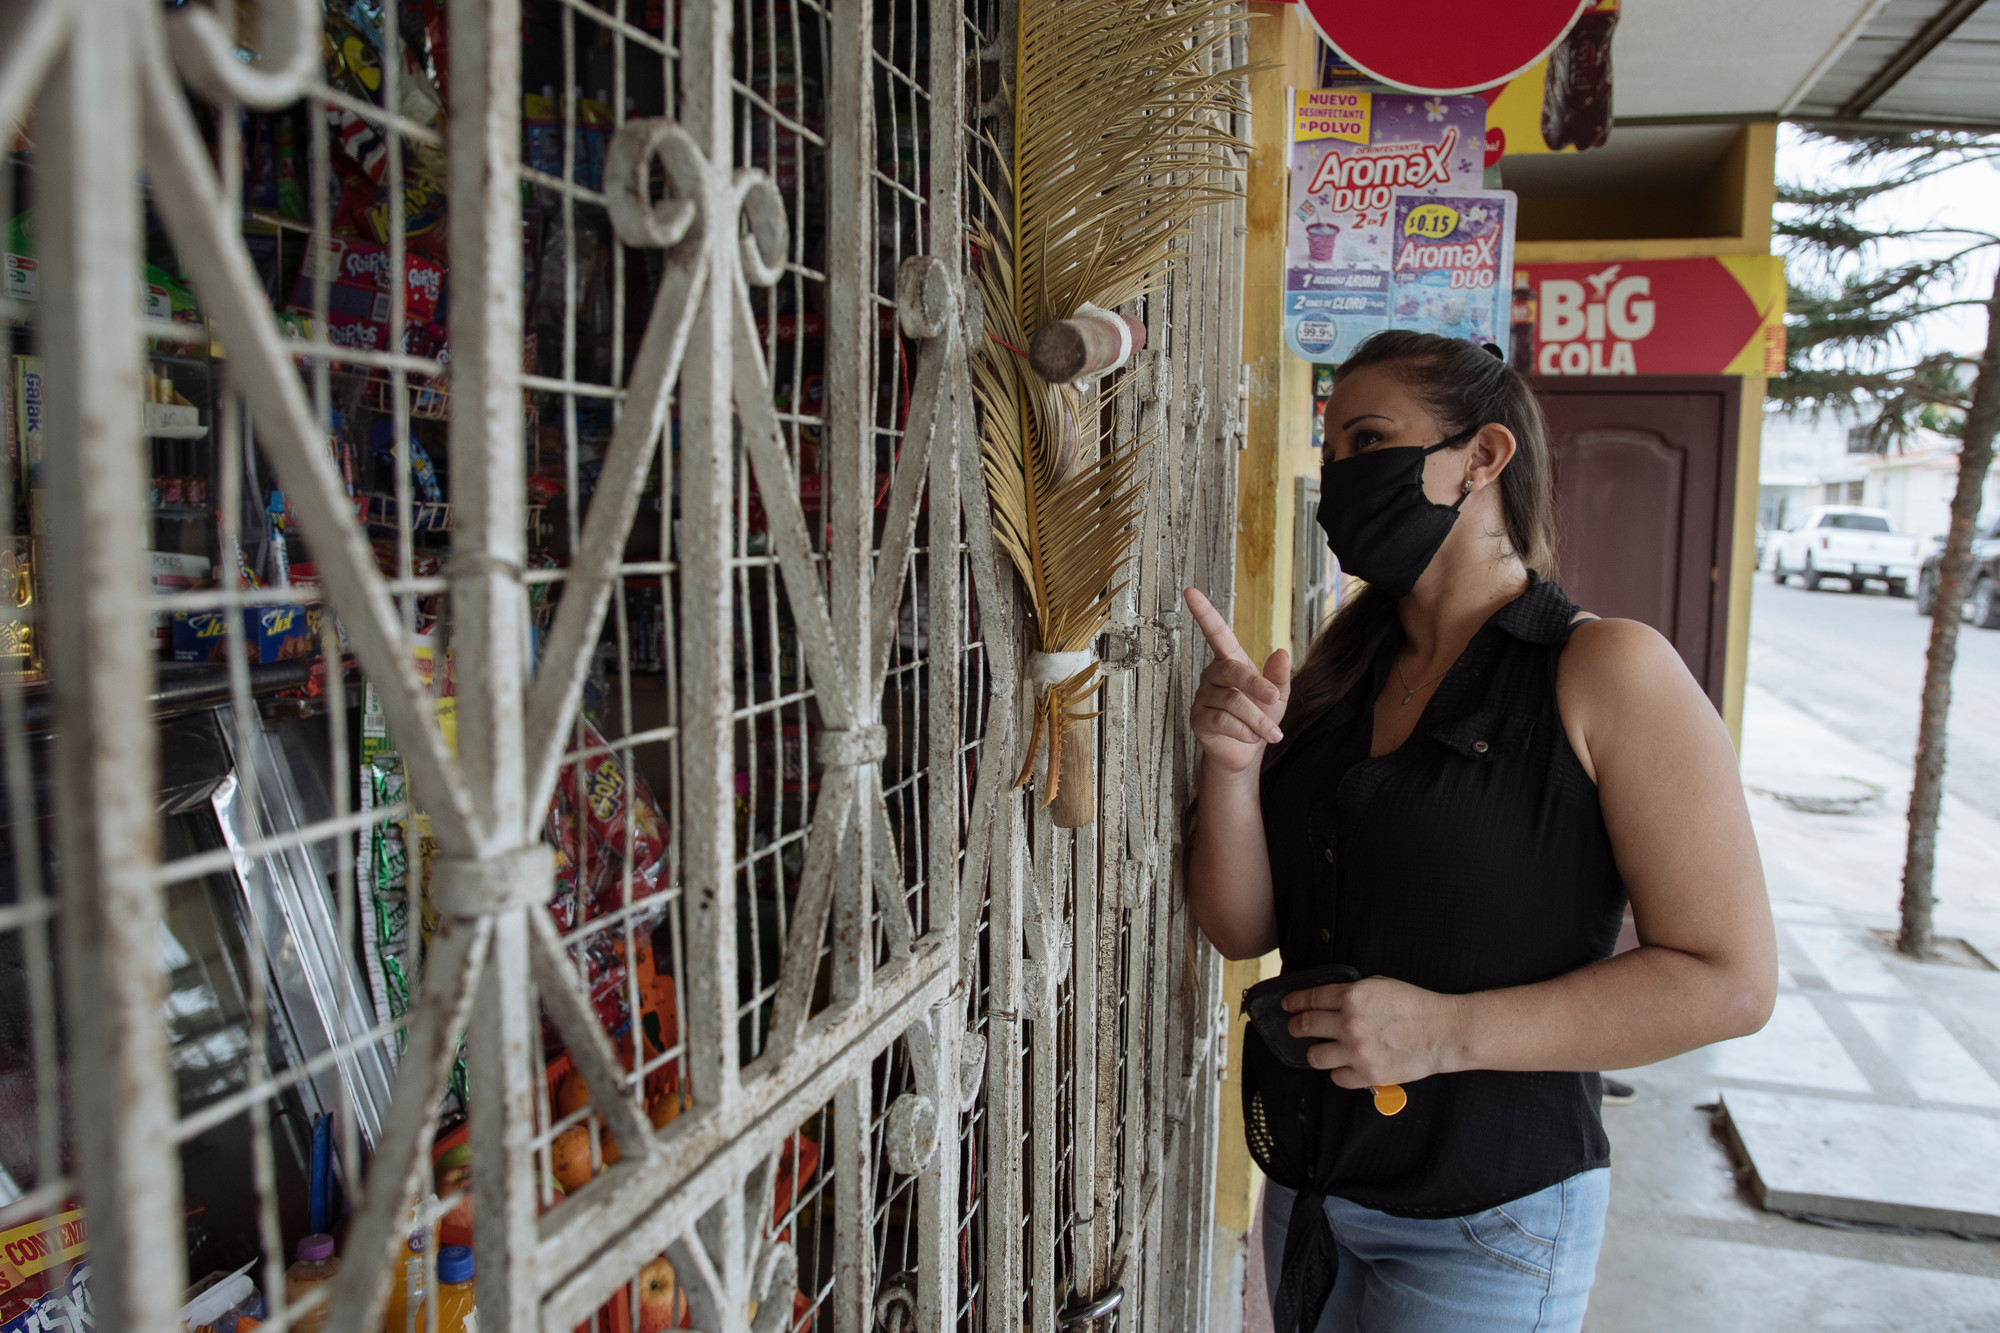 A woman in a face mask stands outside of a small store in a city.